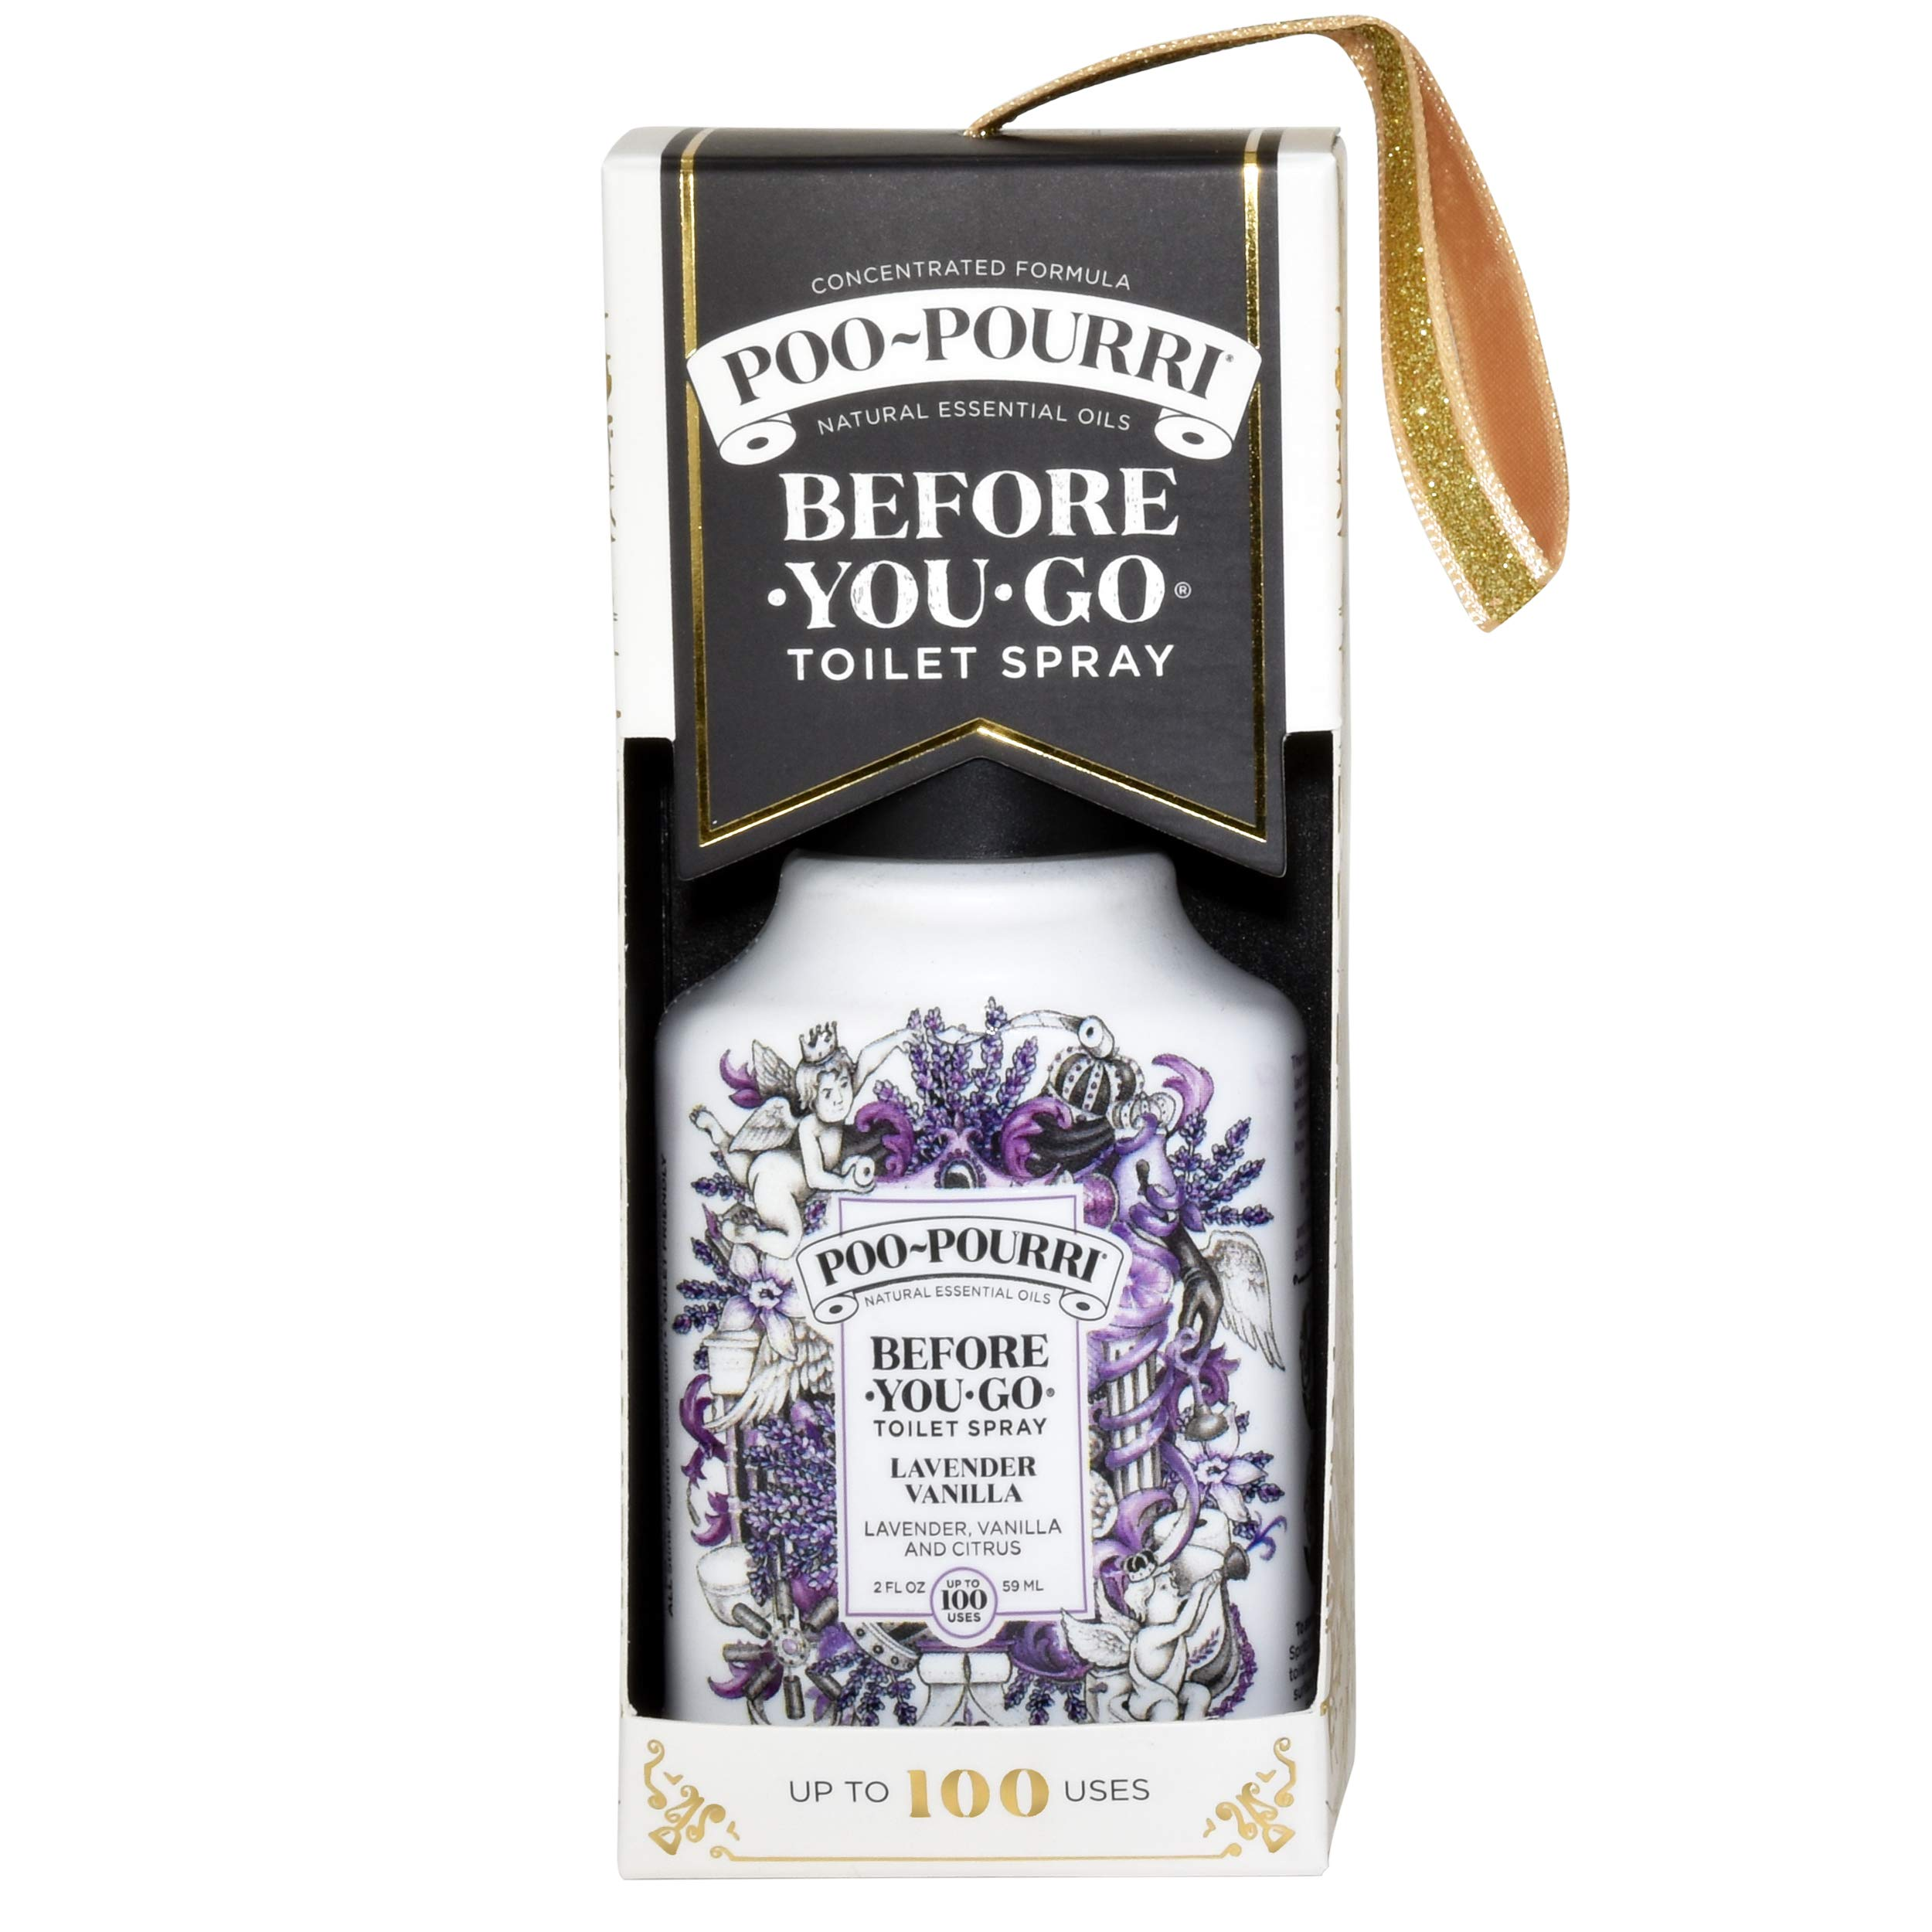 Poo-Pourri Lavender Vanilla 2 Ounce, 4 Ounce, Travel Size Spritzer, and Box by Poo-Pourri (Image #2)